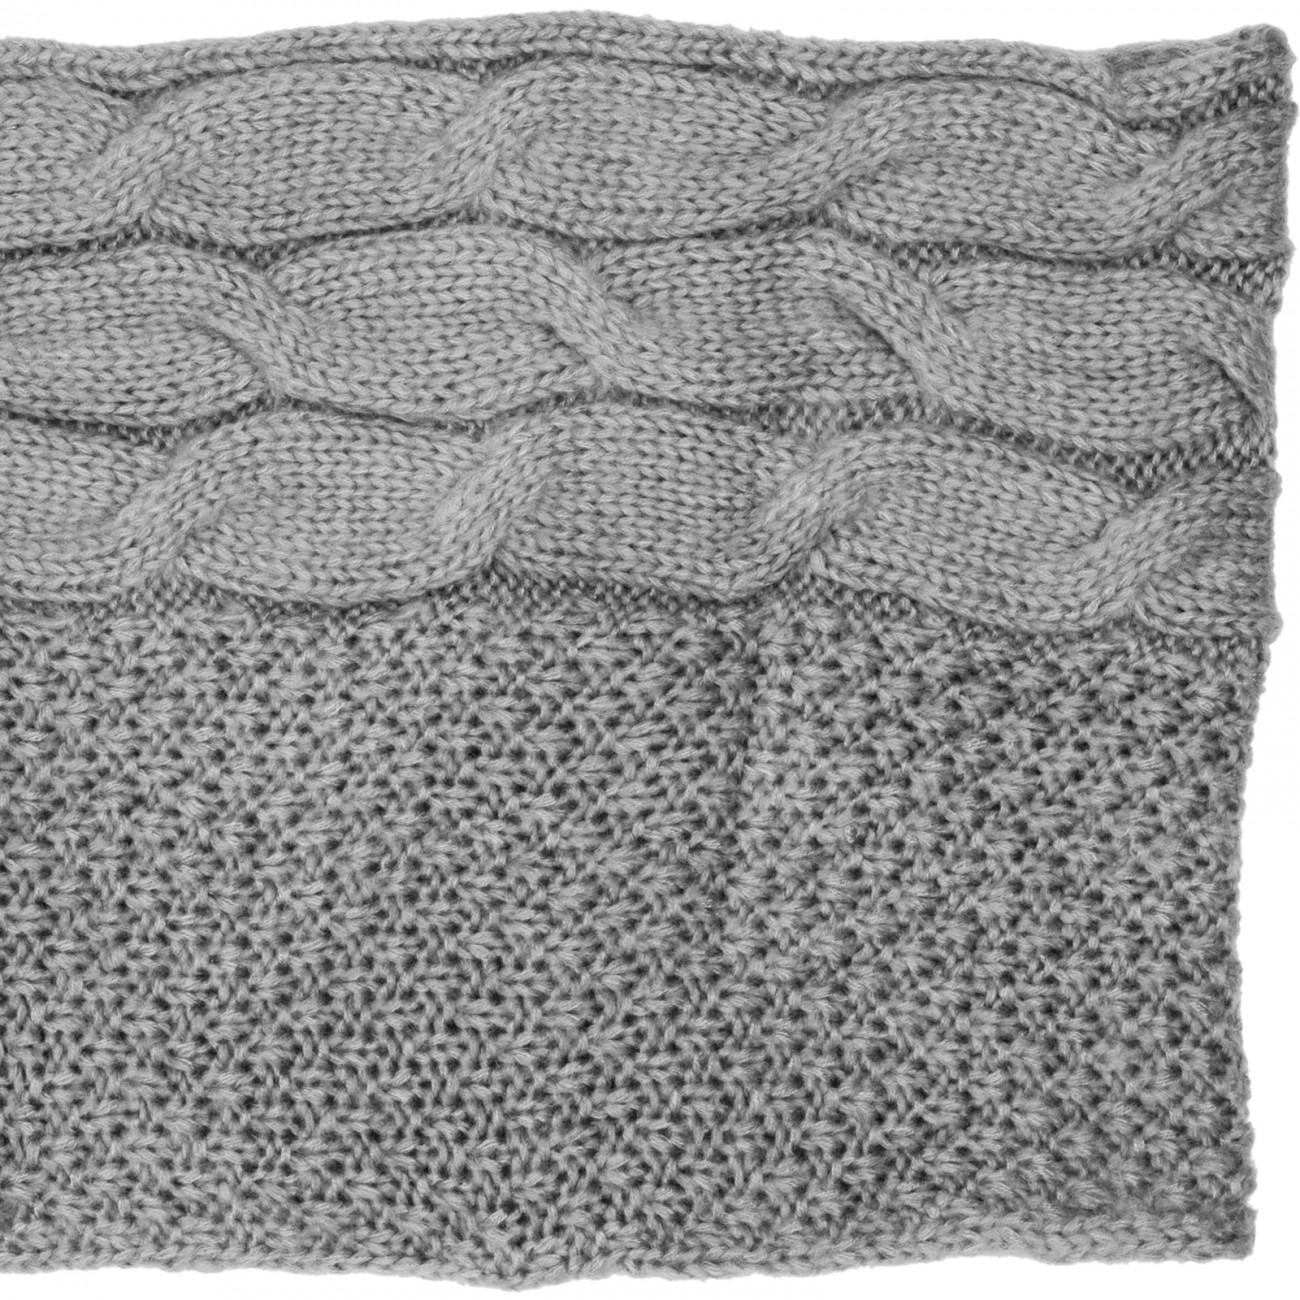 Knitted Snood Pattern : CASPAR Womens Warm Knitted Loop Scarf / Snood / Cowl with Cable Stitch Patter...